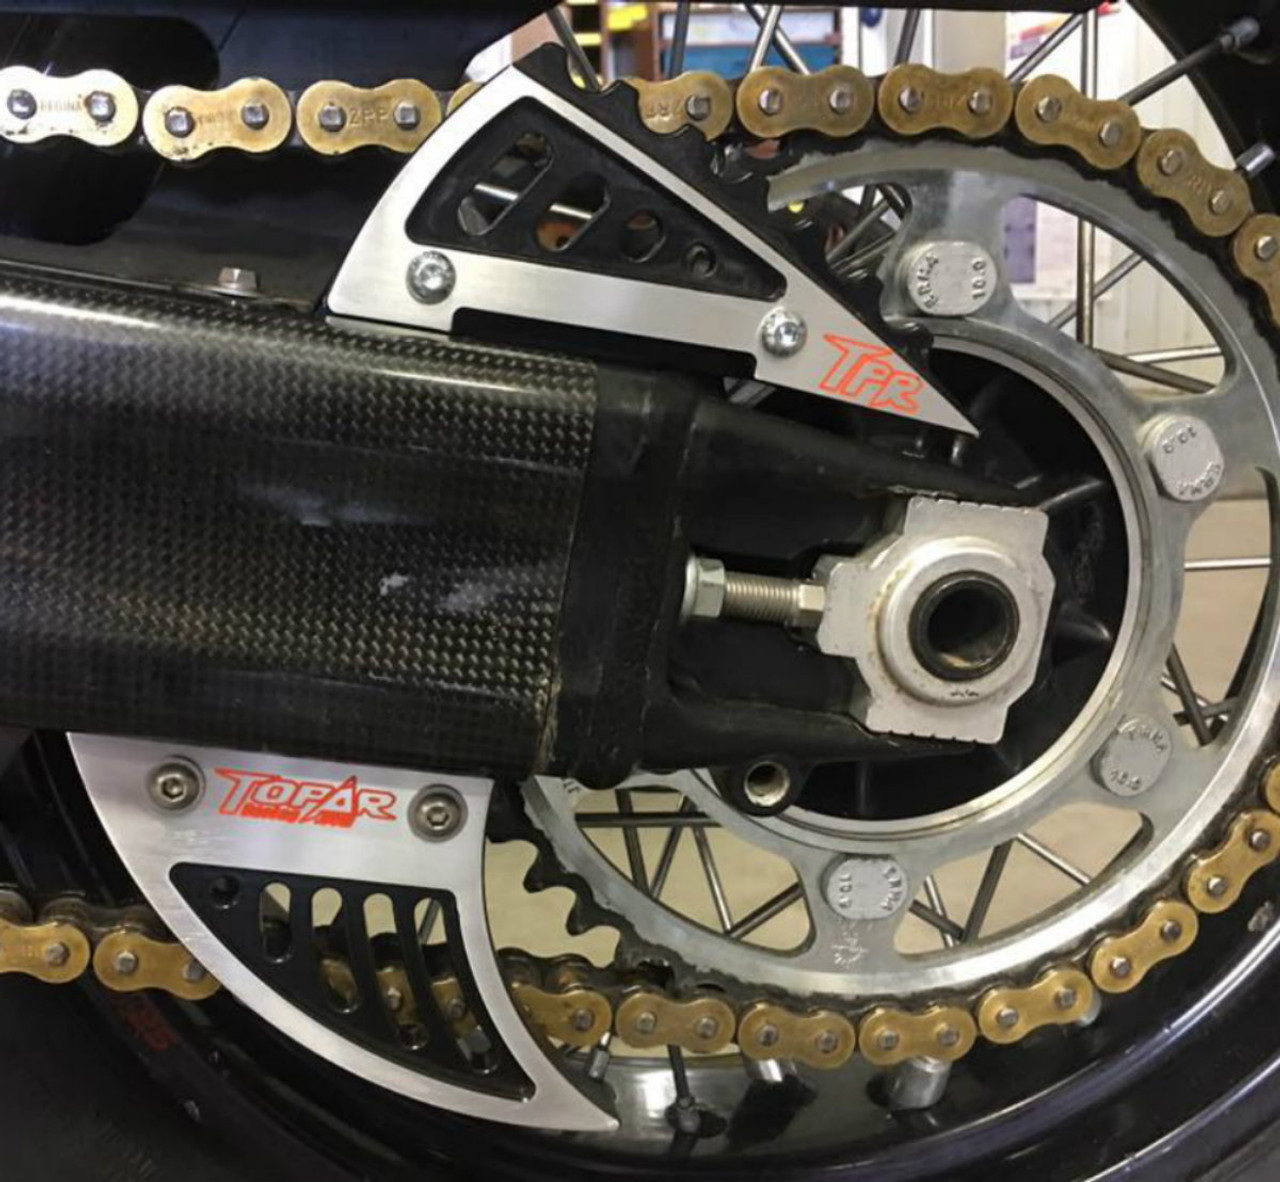 Topar Racing Chain Guard Fin Set fits 2003-2012 KTM 950 and 990 ADVENTURE - Shown here with Optional High Contrast Black EnduroCote Finish - CALL to order this option or for further information